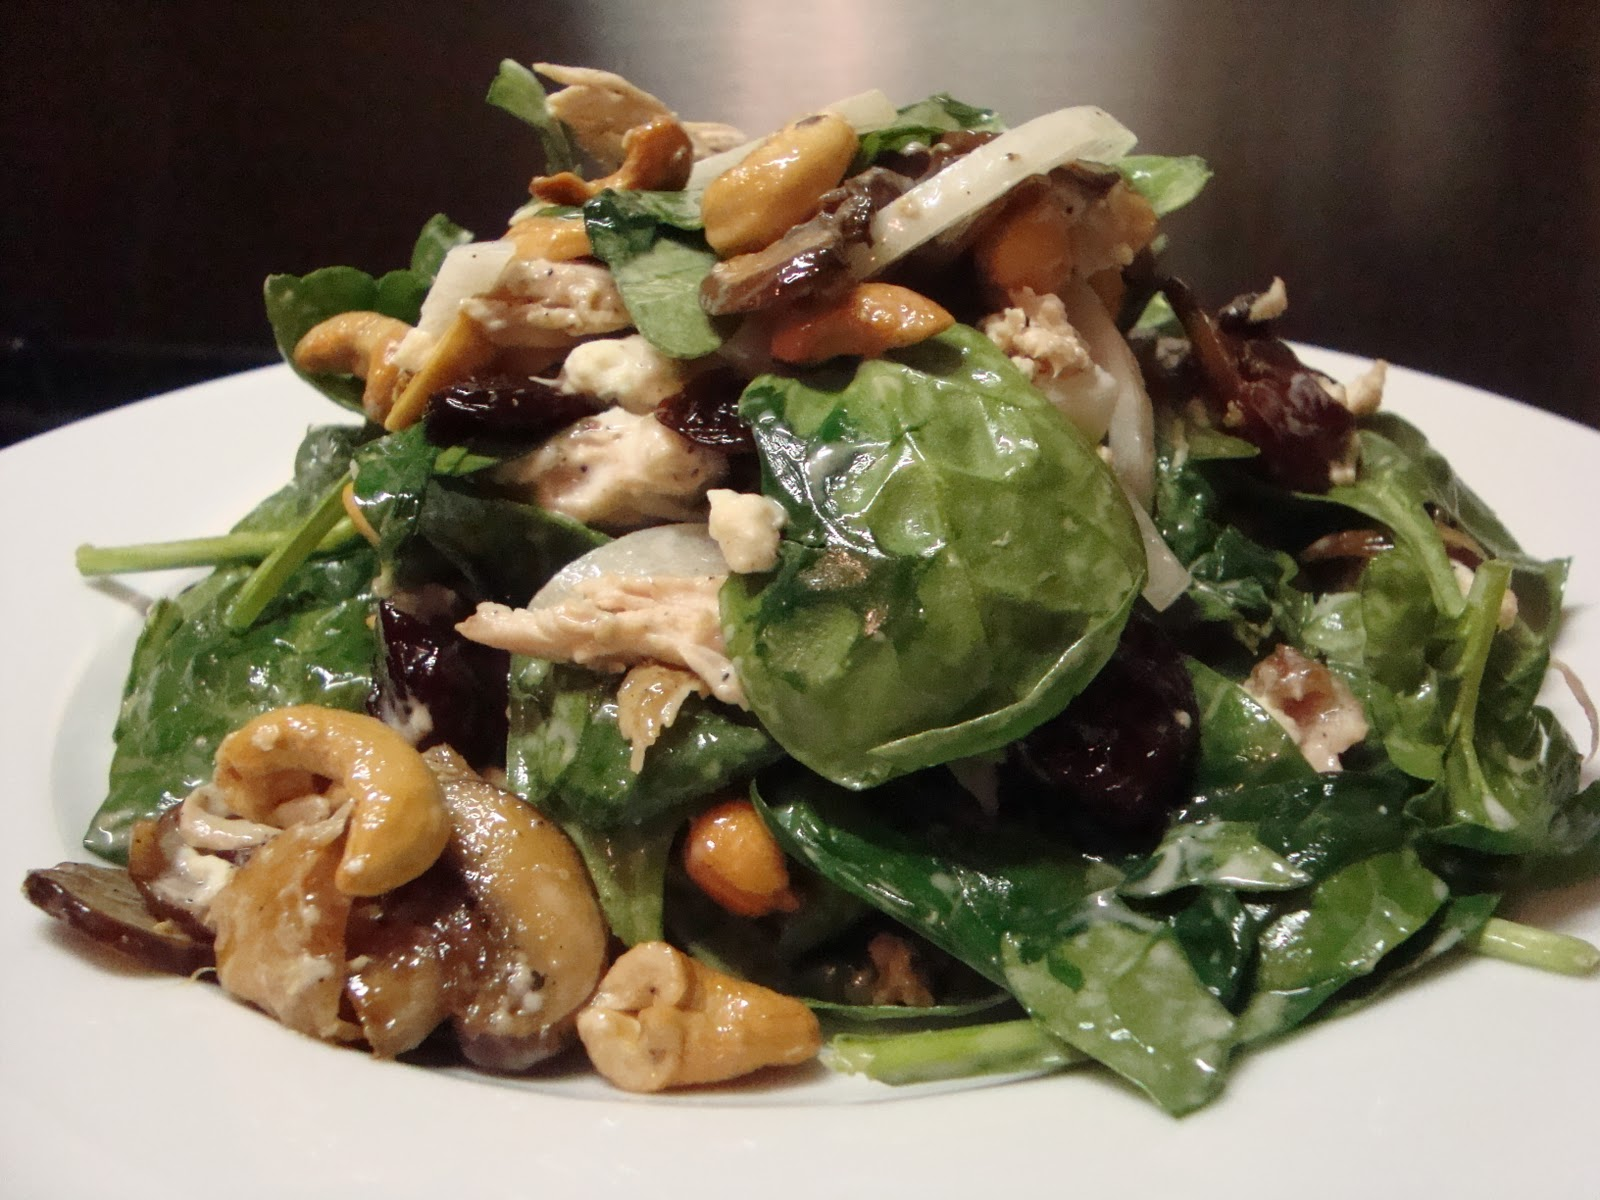 Kitchen Centsability : Wilted Spinach Chicken Salad with Lots of Tasty ...